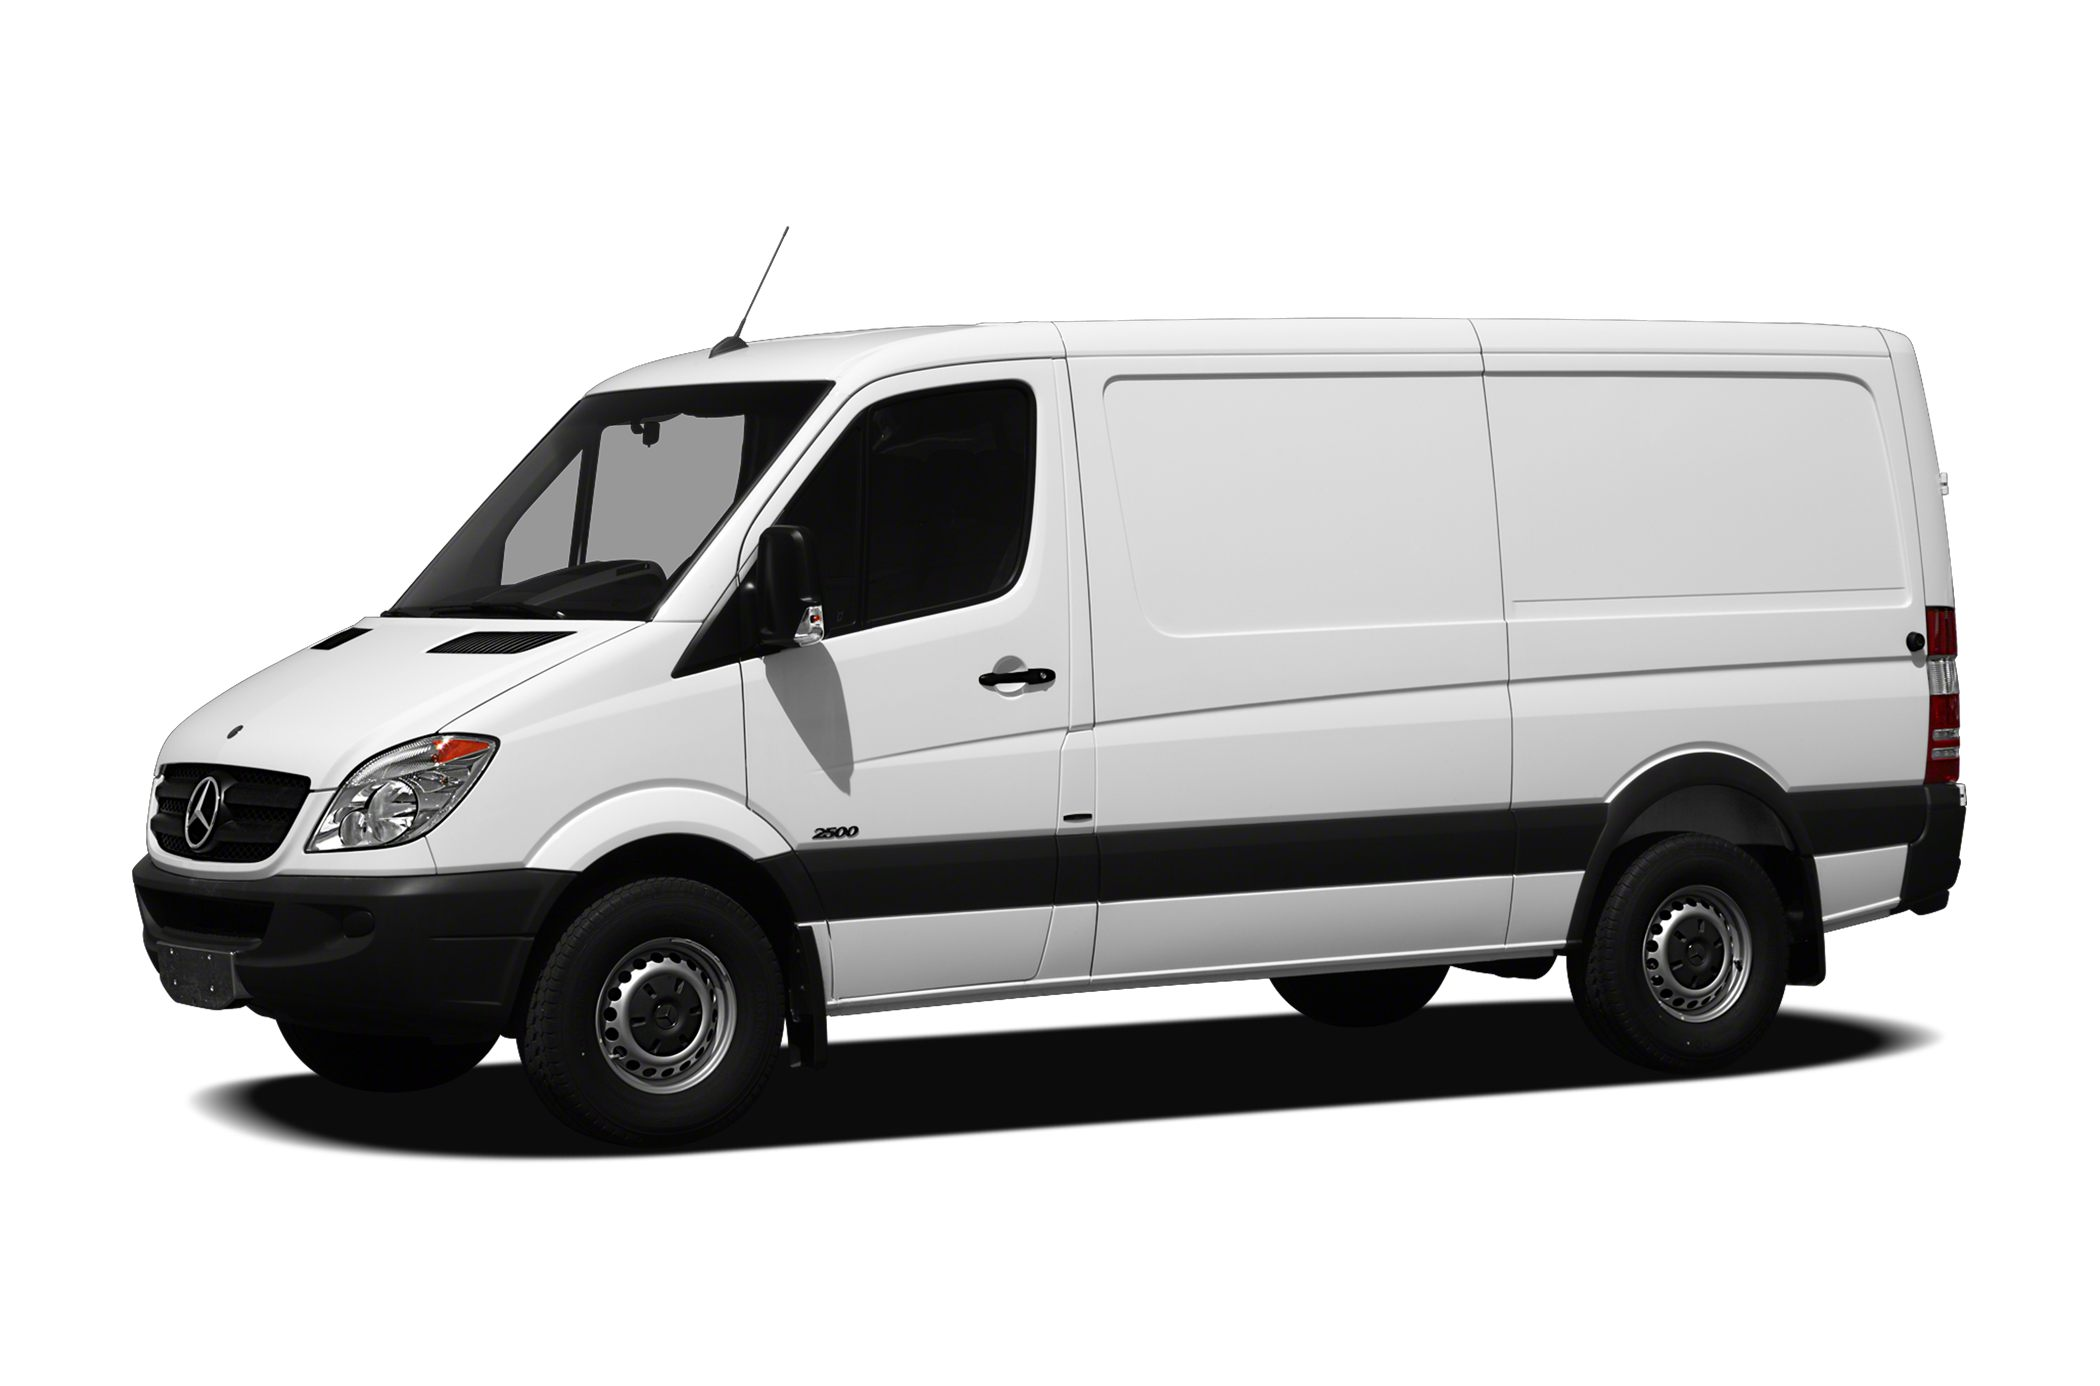 2010 Mercedes-Benz Sprinter 2500 Cargo Van for sale in Littleton for $69,995 with 8,716 miles.